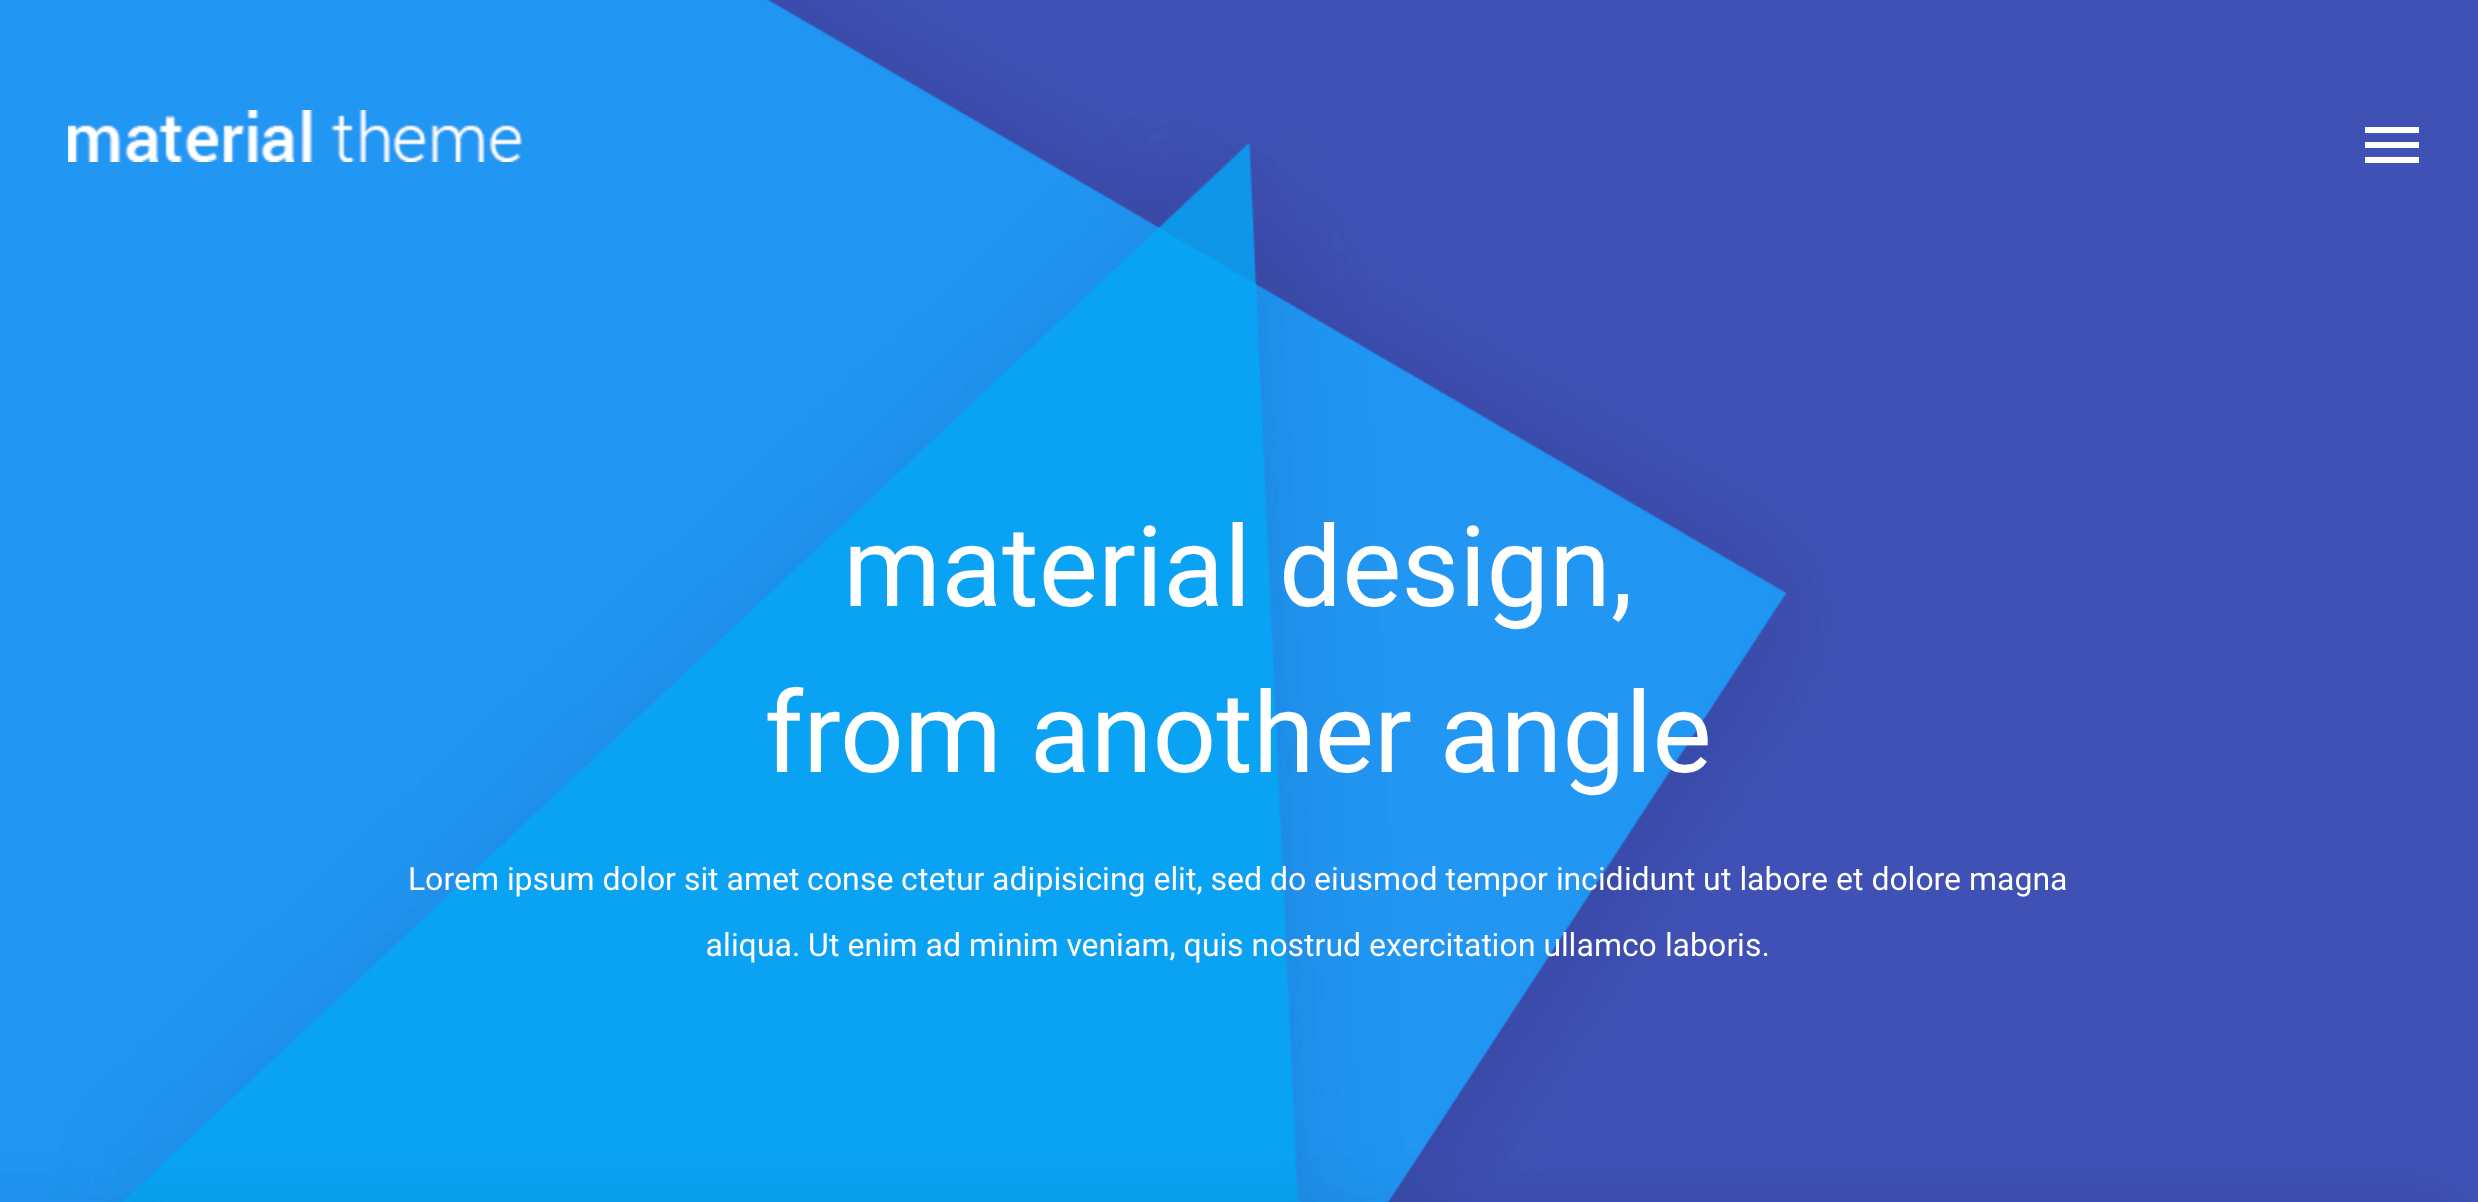 material-design-angle